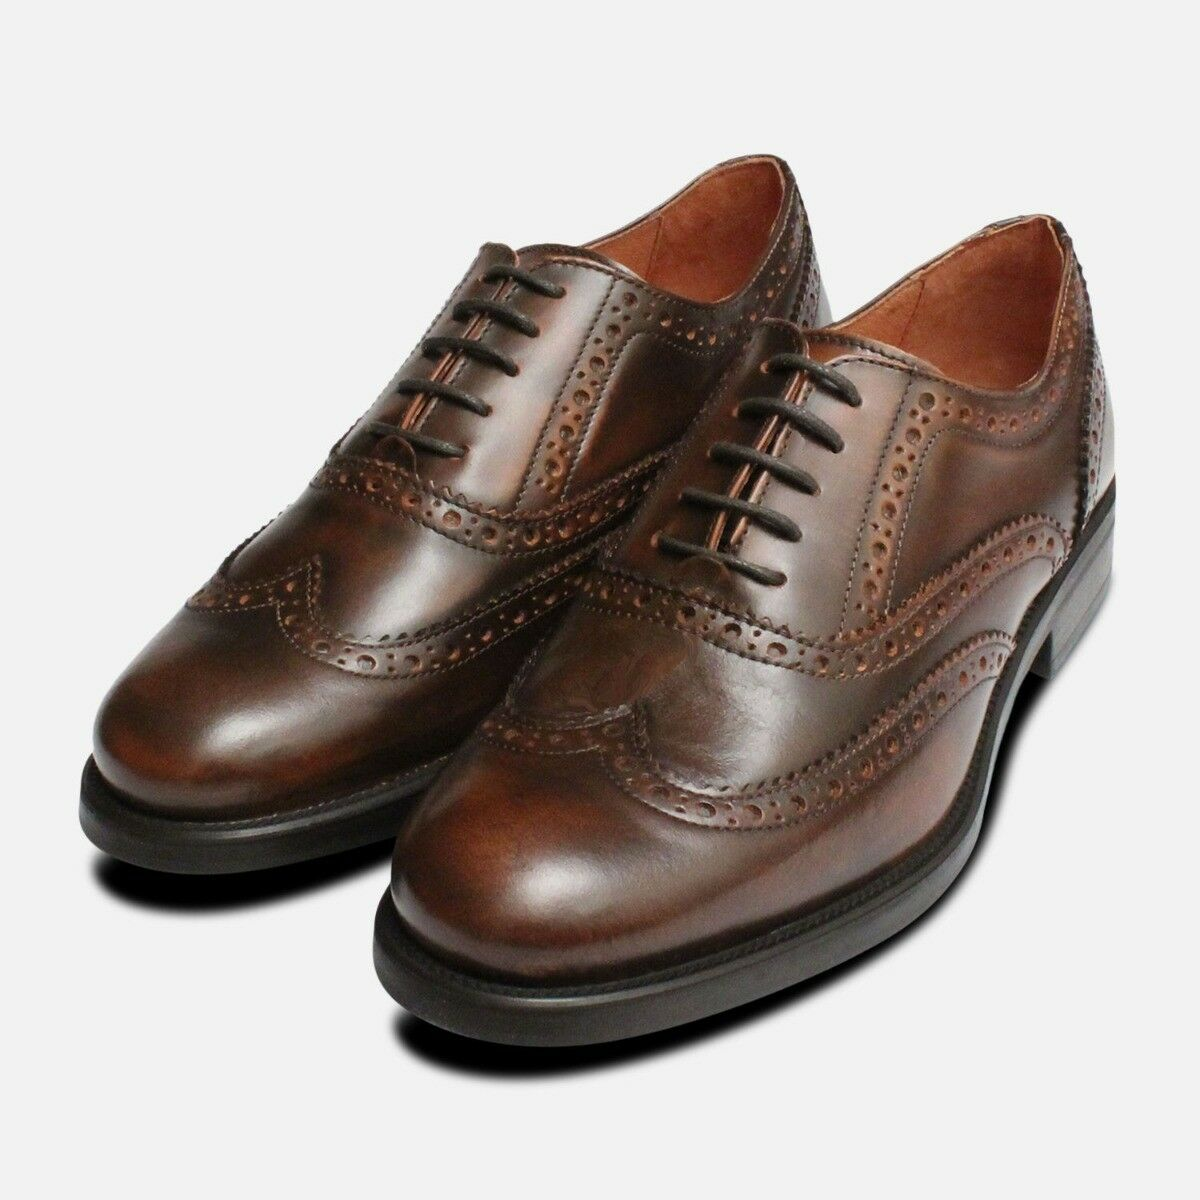 Antique Brown Oxford Brogues for Ladies